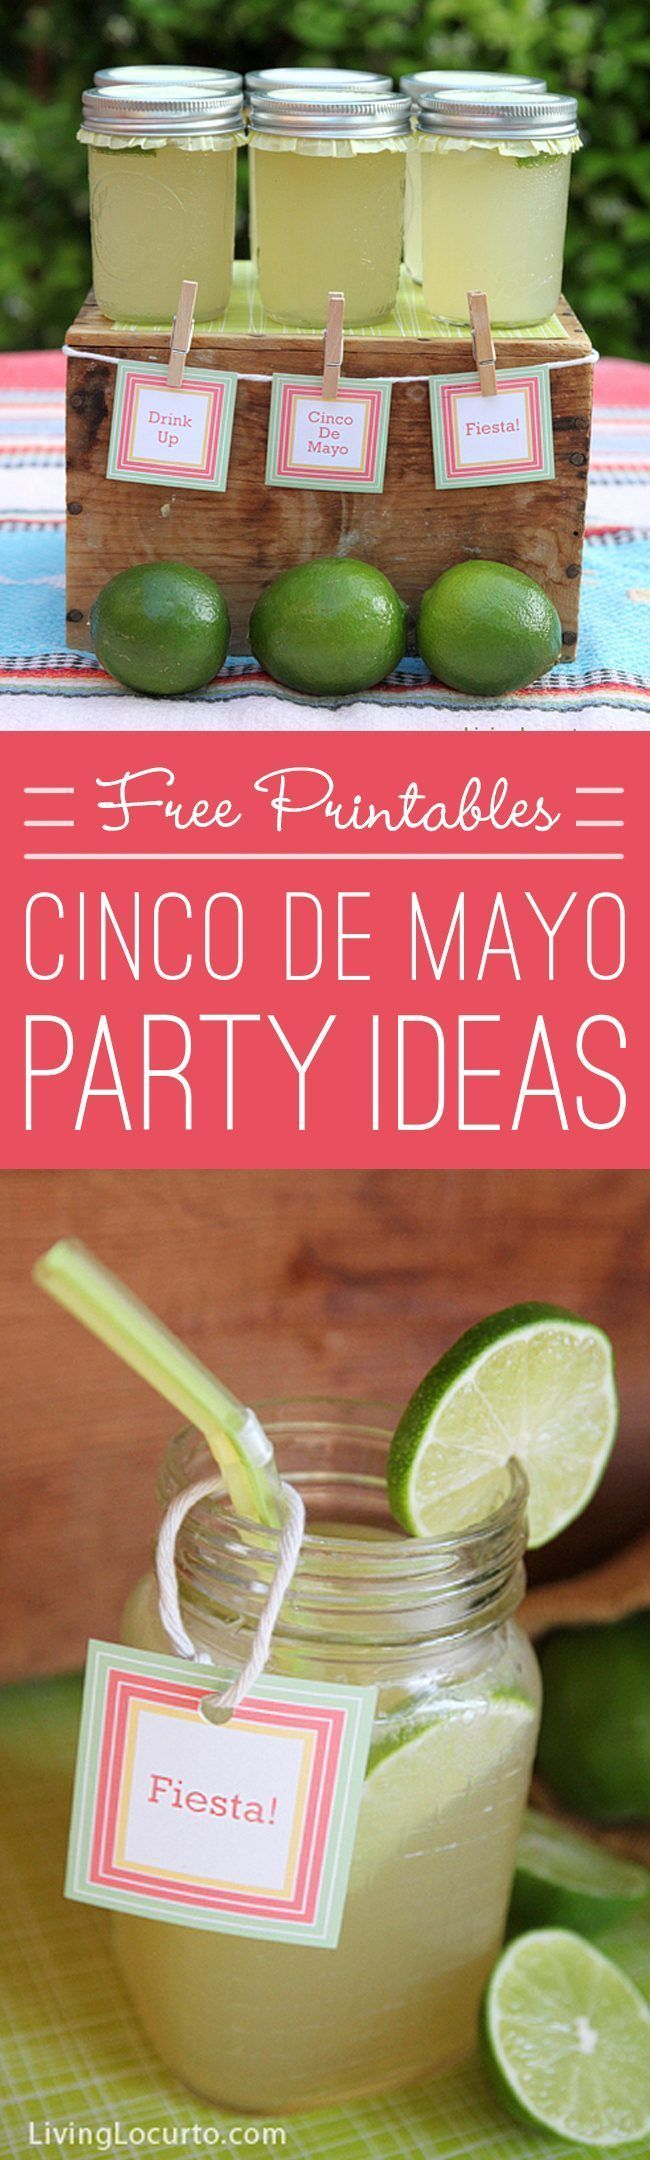 17 best ideas about cinco de mayo on pinterest mexican fiesta party cinco de mayo party and - Cinco de mayo party decoration ideas ...